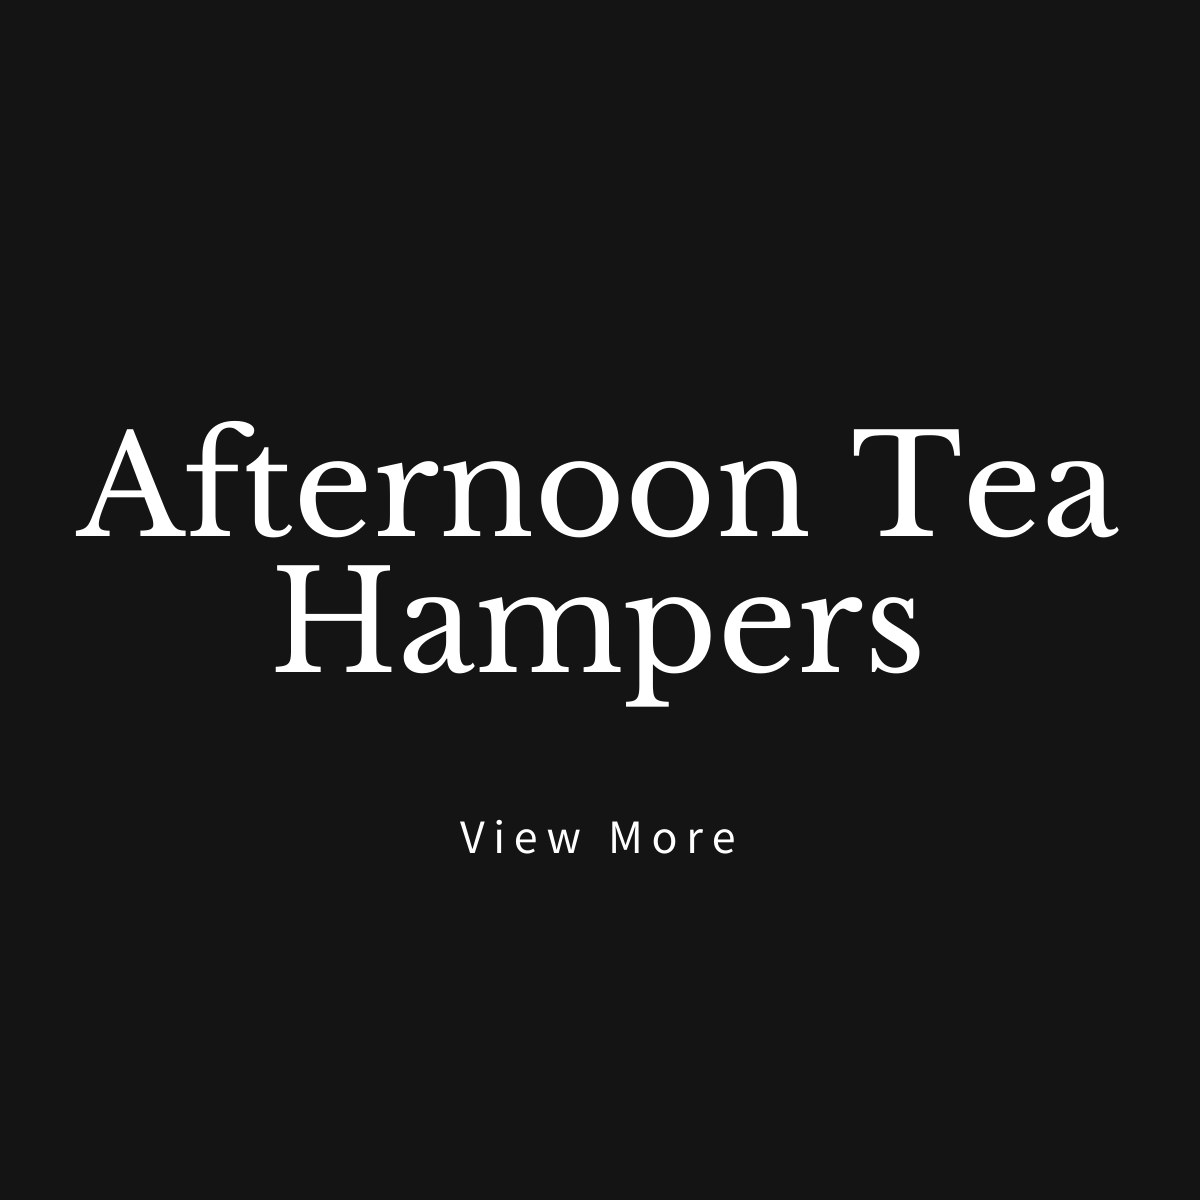 View more Afternoon Tea Hampers